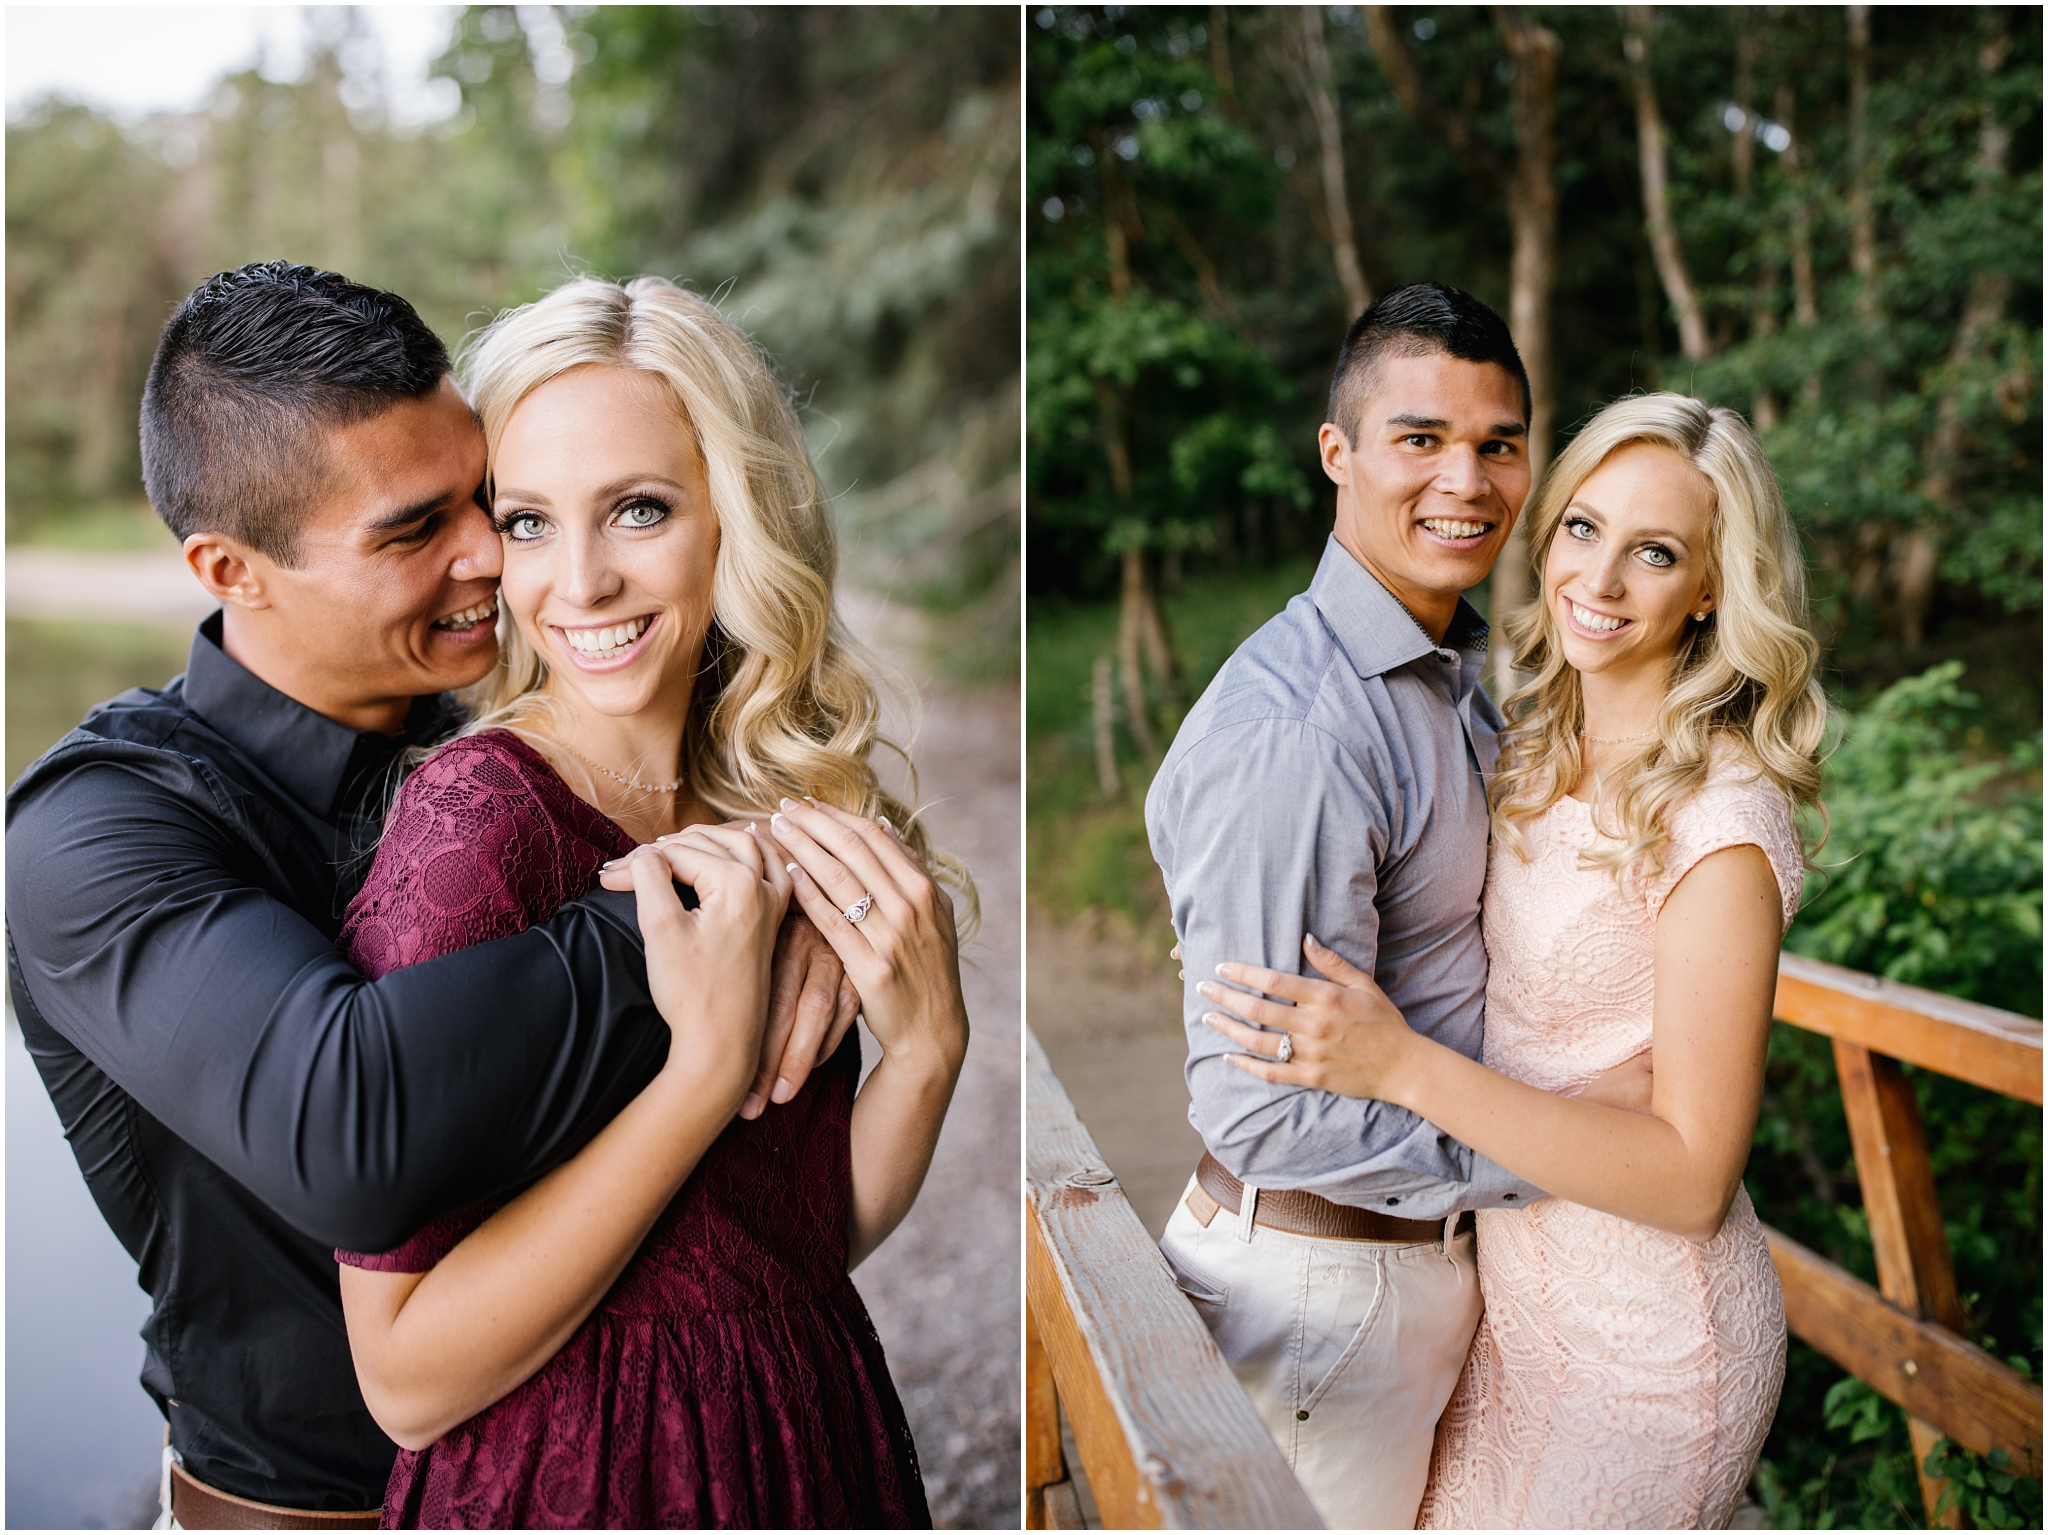 HCengagements-76_Lizzie-B-Imagery-Utah-Wedding-Photographer-Central-Utah-Park-City-Salt-Lake-City-Payson-Canyon-Engagement-Session.jpg